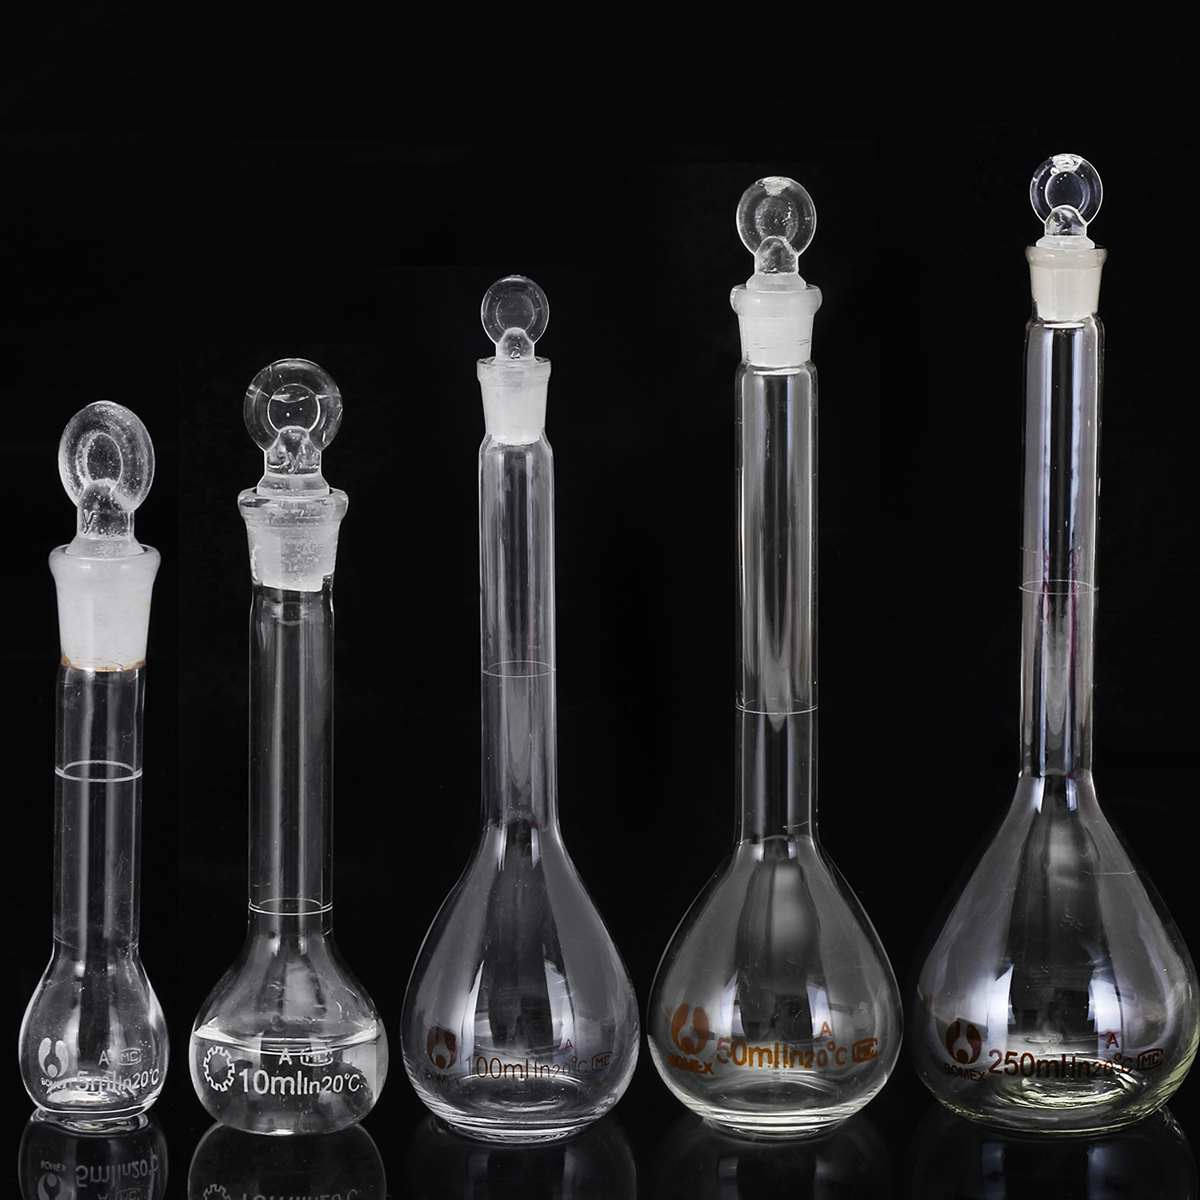 5-100ml Transparent Lab Conical Flask Glass Scientific Glass Erlenmeyer Flask Safe Glassware Laboratory School Research Supply